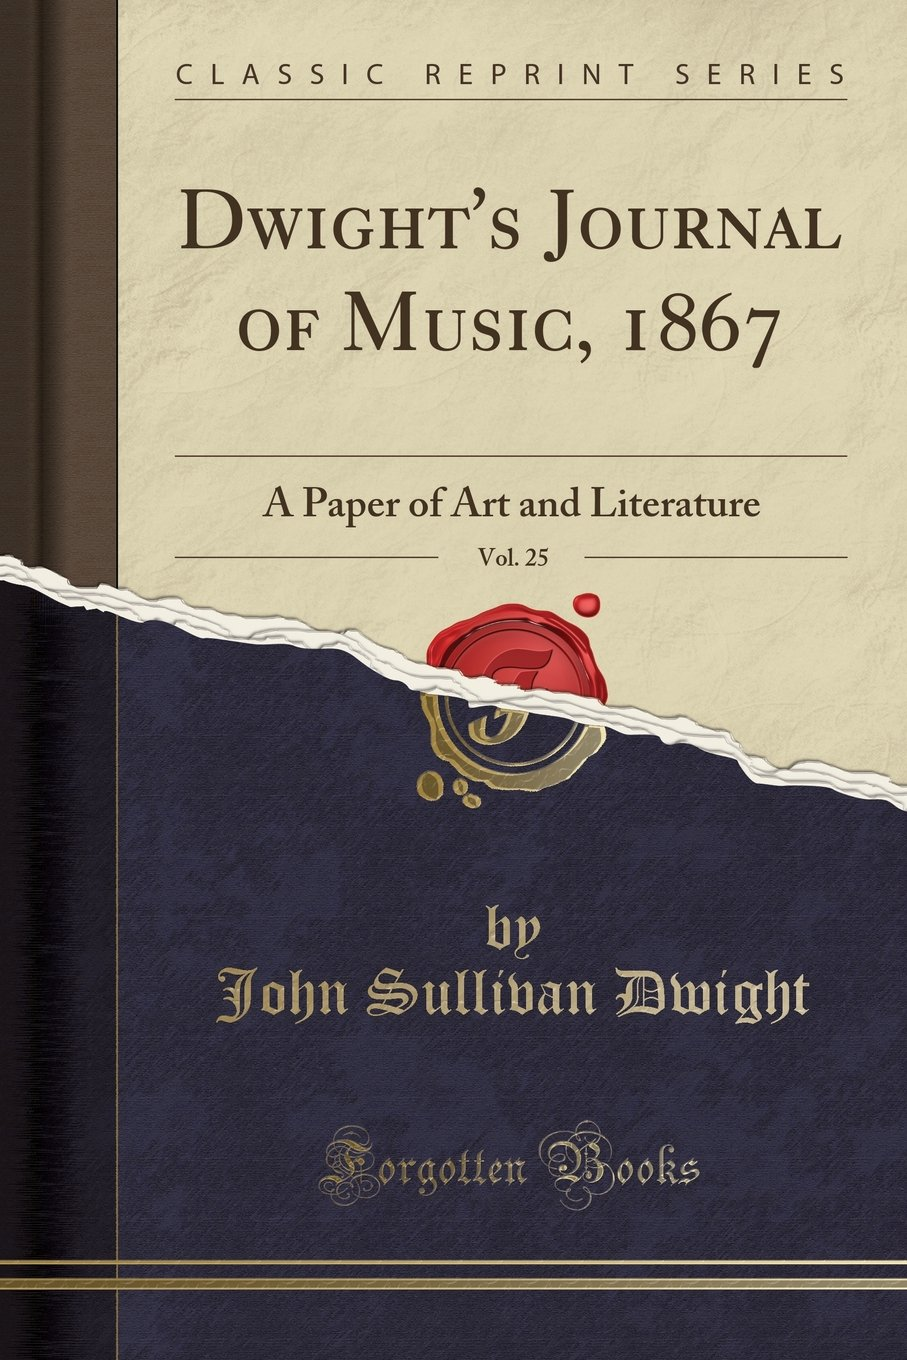 Dwight's Journal of Music, 1867, Vol. 25: A Paper of Art and Literature (Classic Reprint) PDF